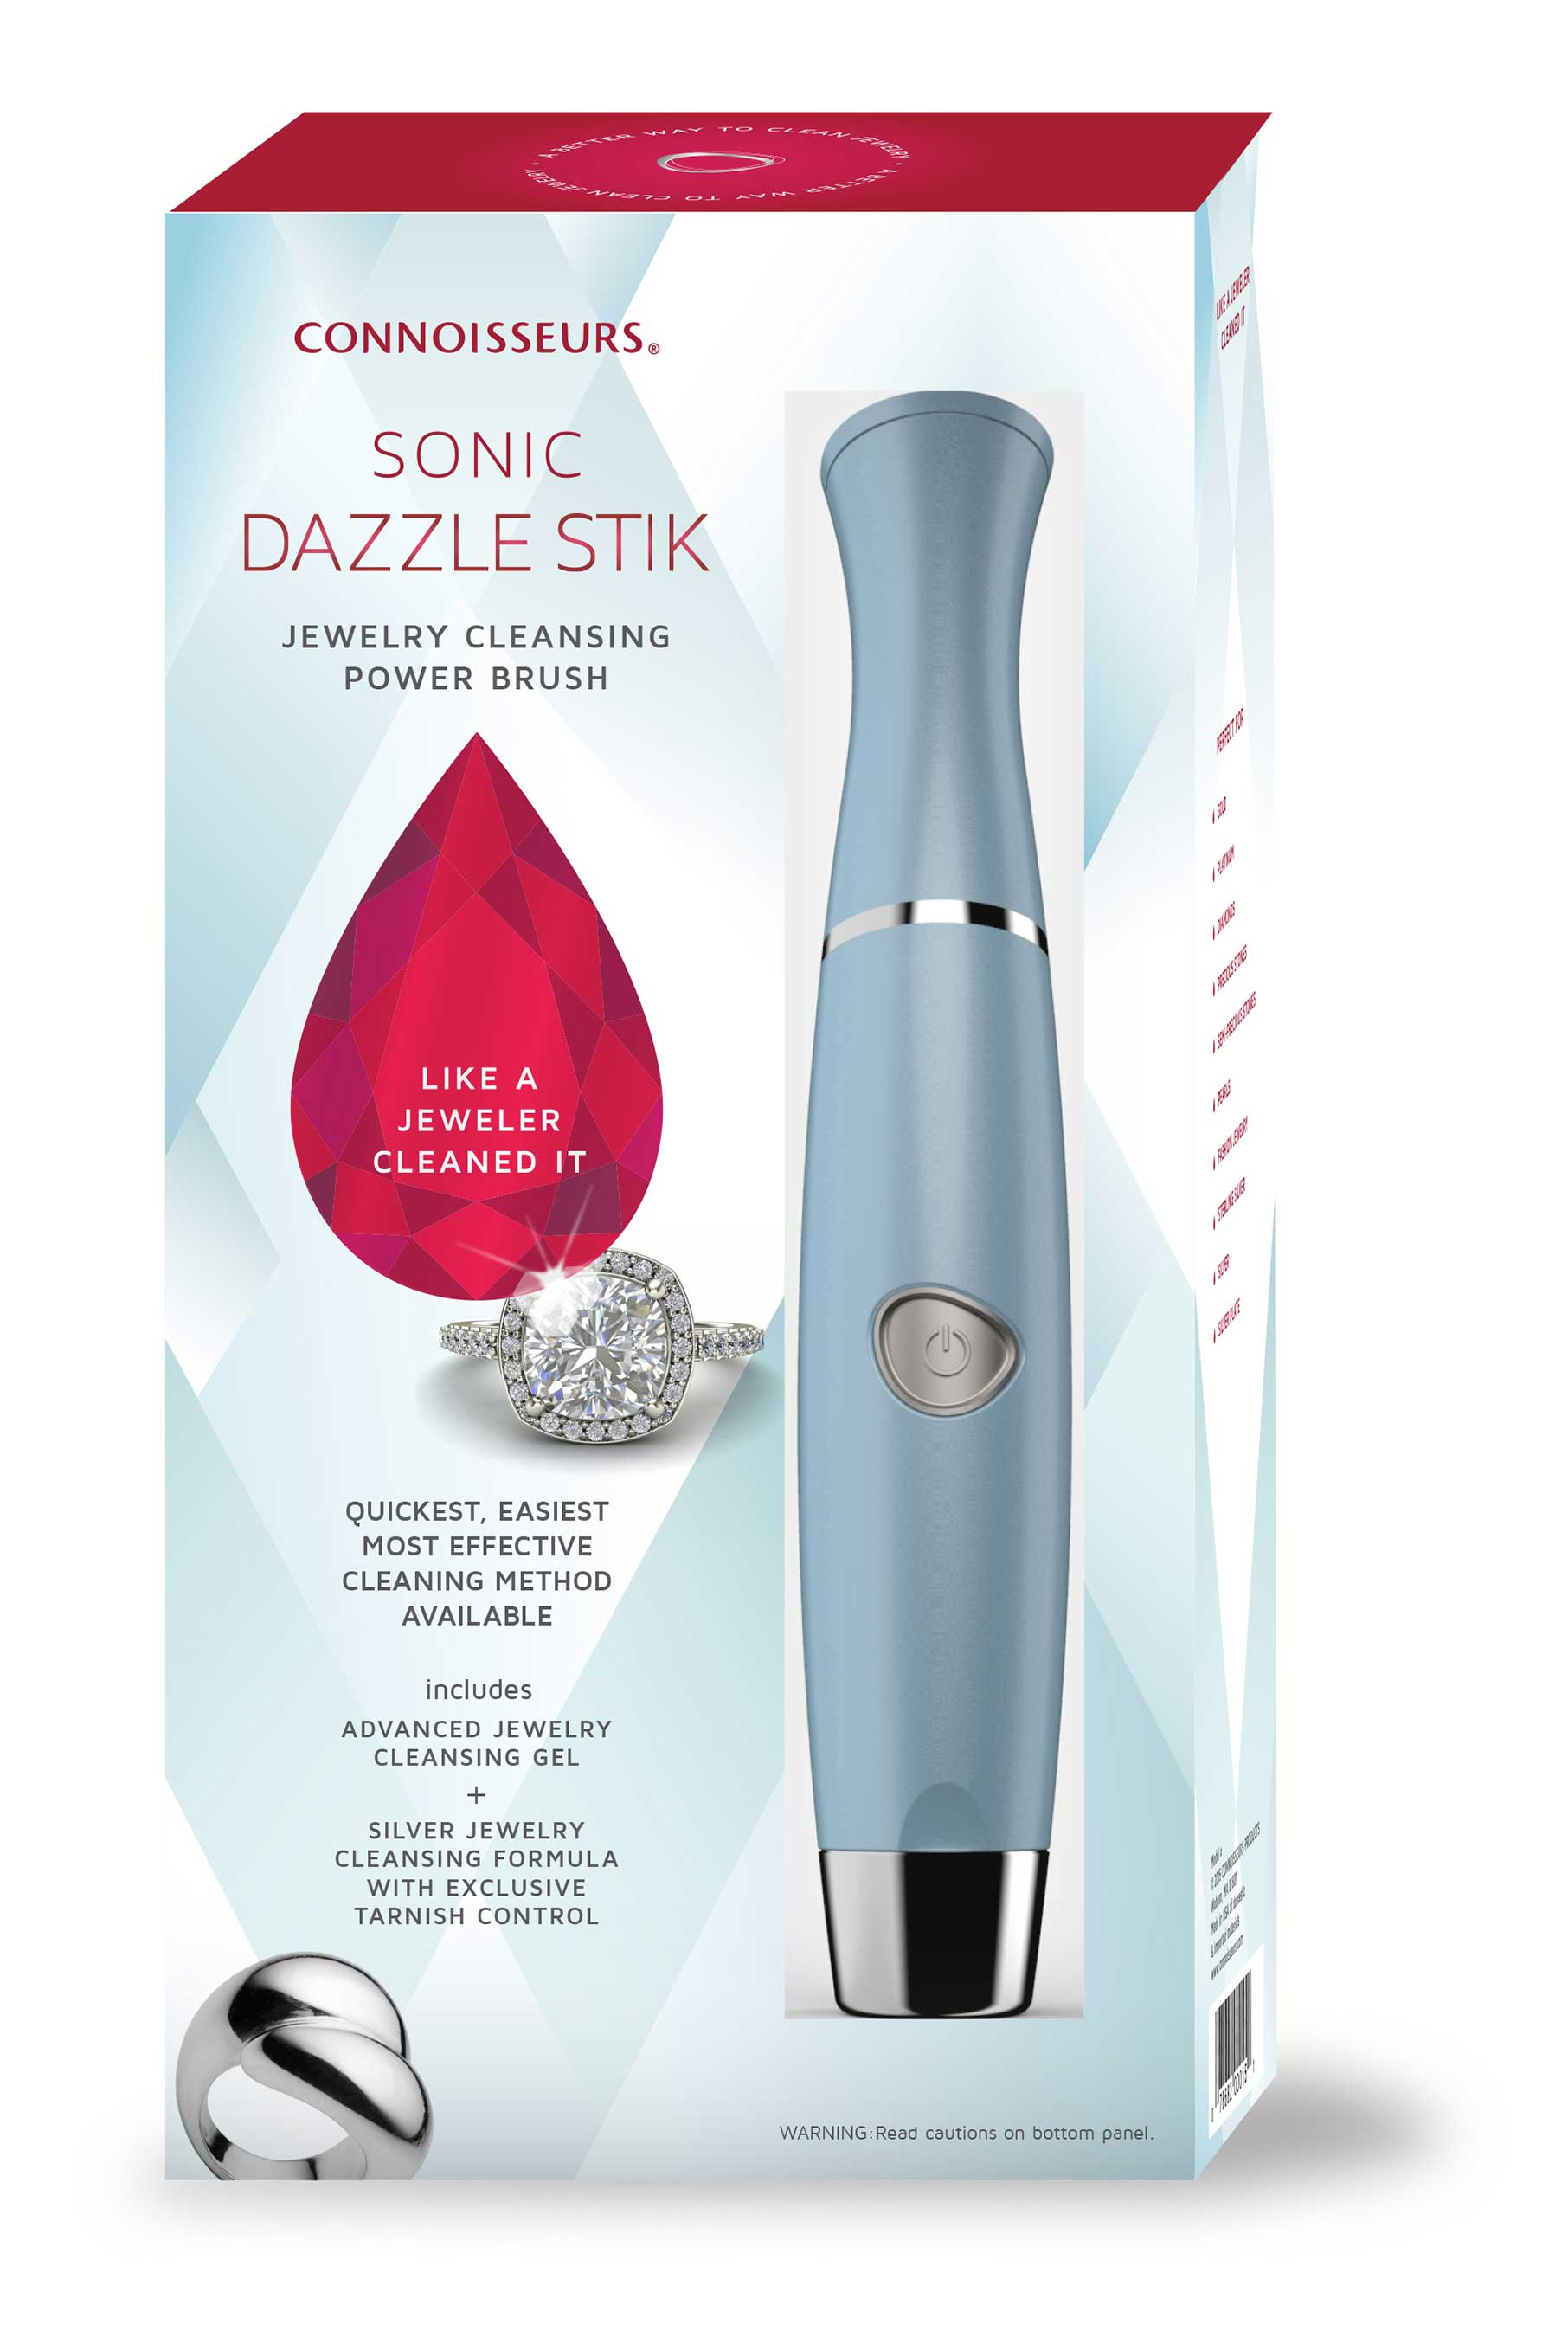 Connoisseurs Sonic Dazzle Stik Jewelry Cleansing Power Brush